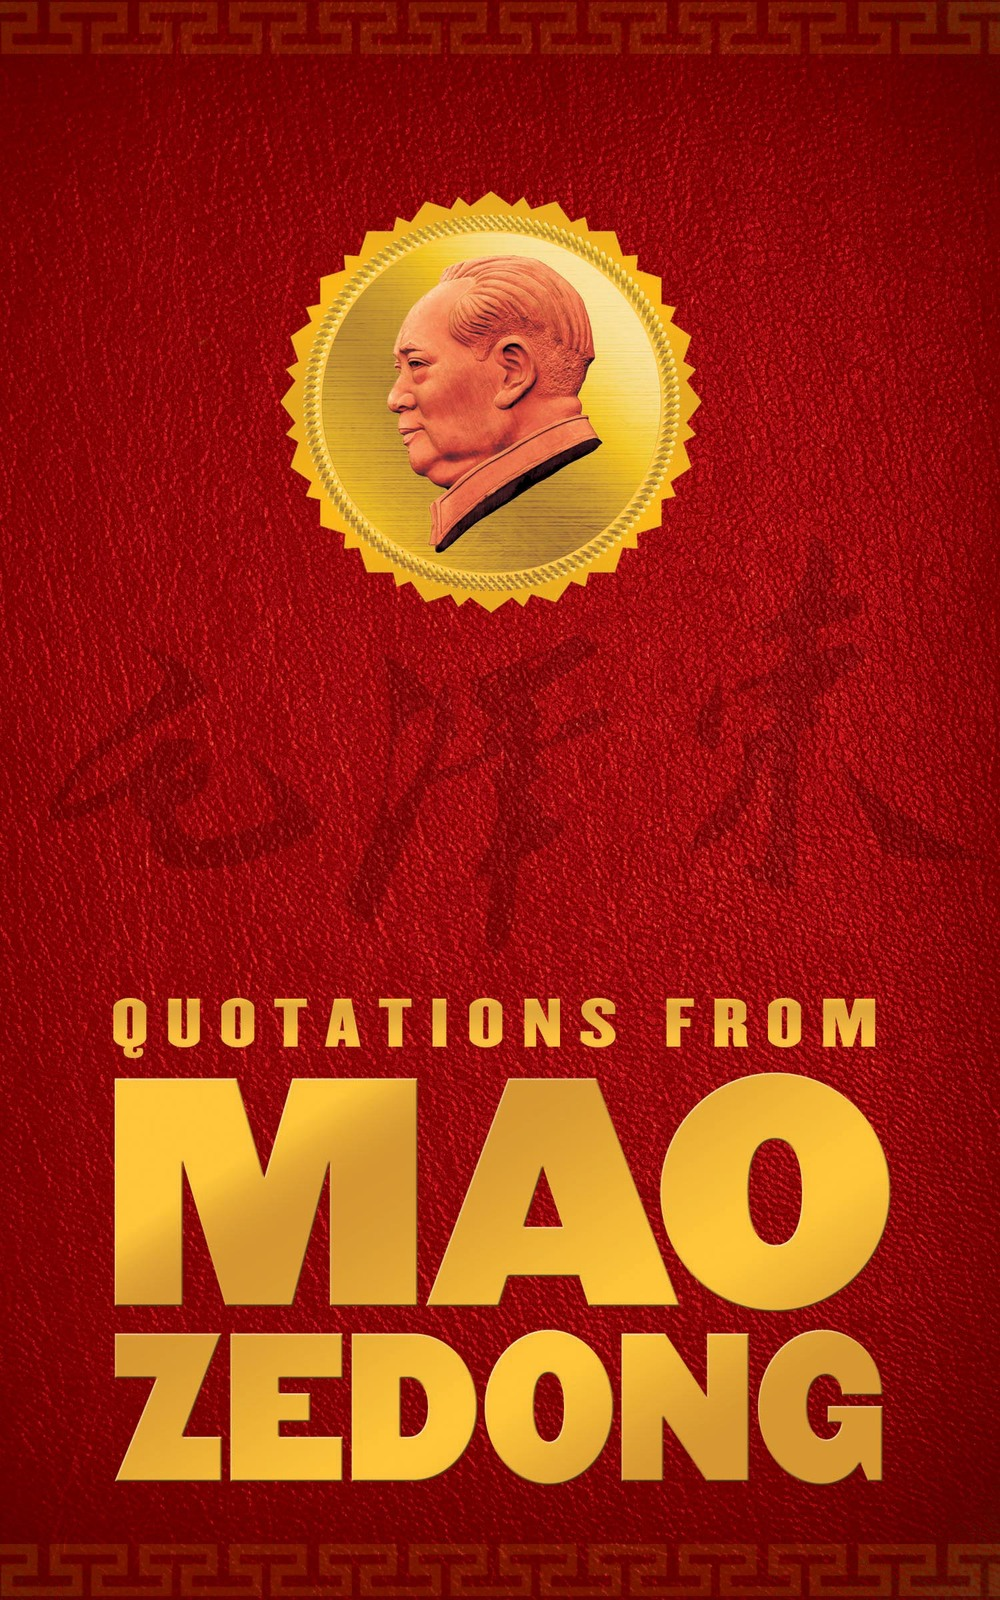 Ebooks times media group inc commonly known in the west as the little red book quotations of mao zedong contains a selection from mao zedongs political statements and speeches fandeluxe Images